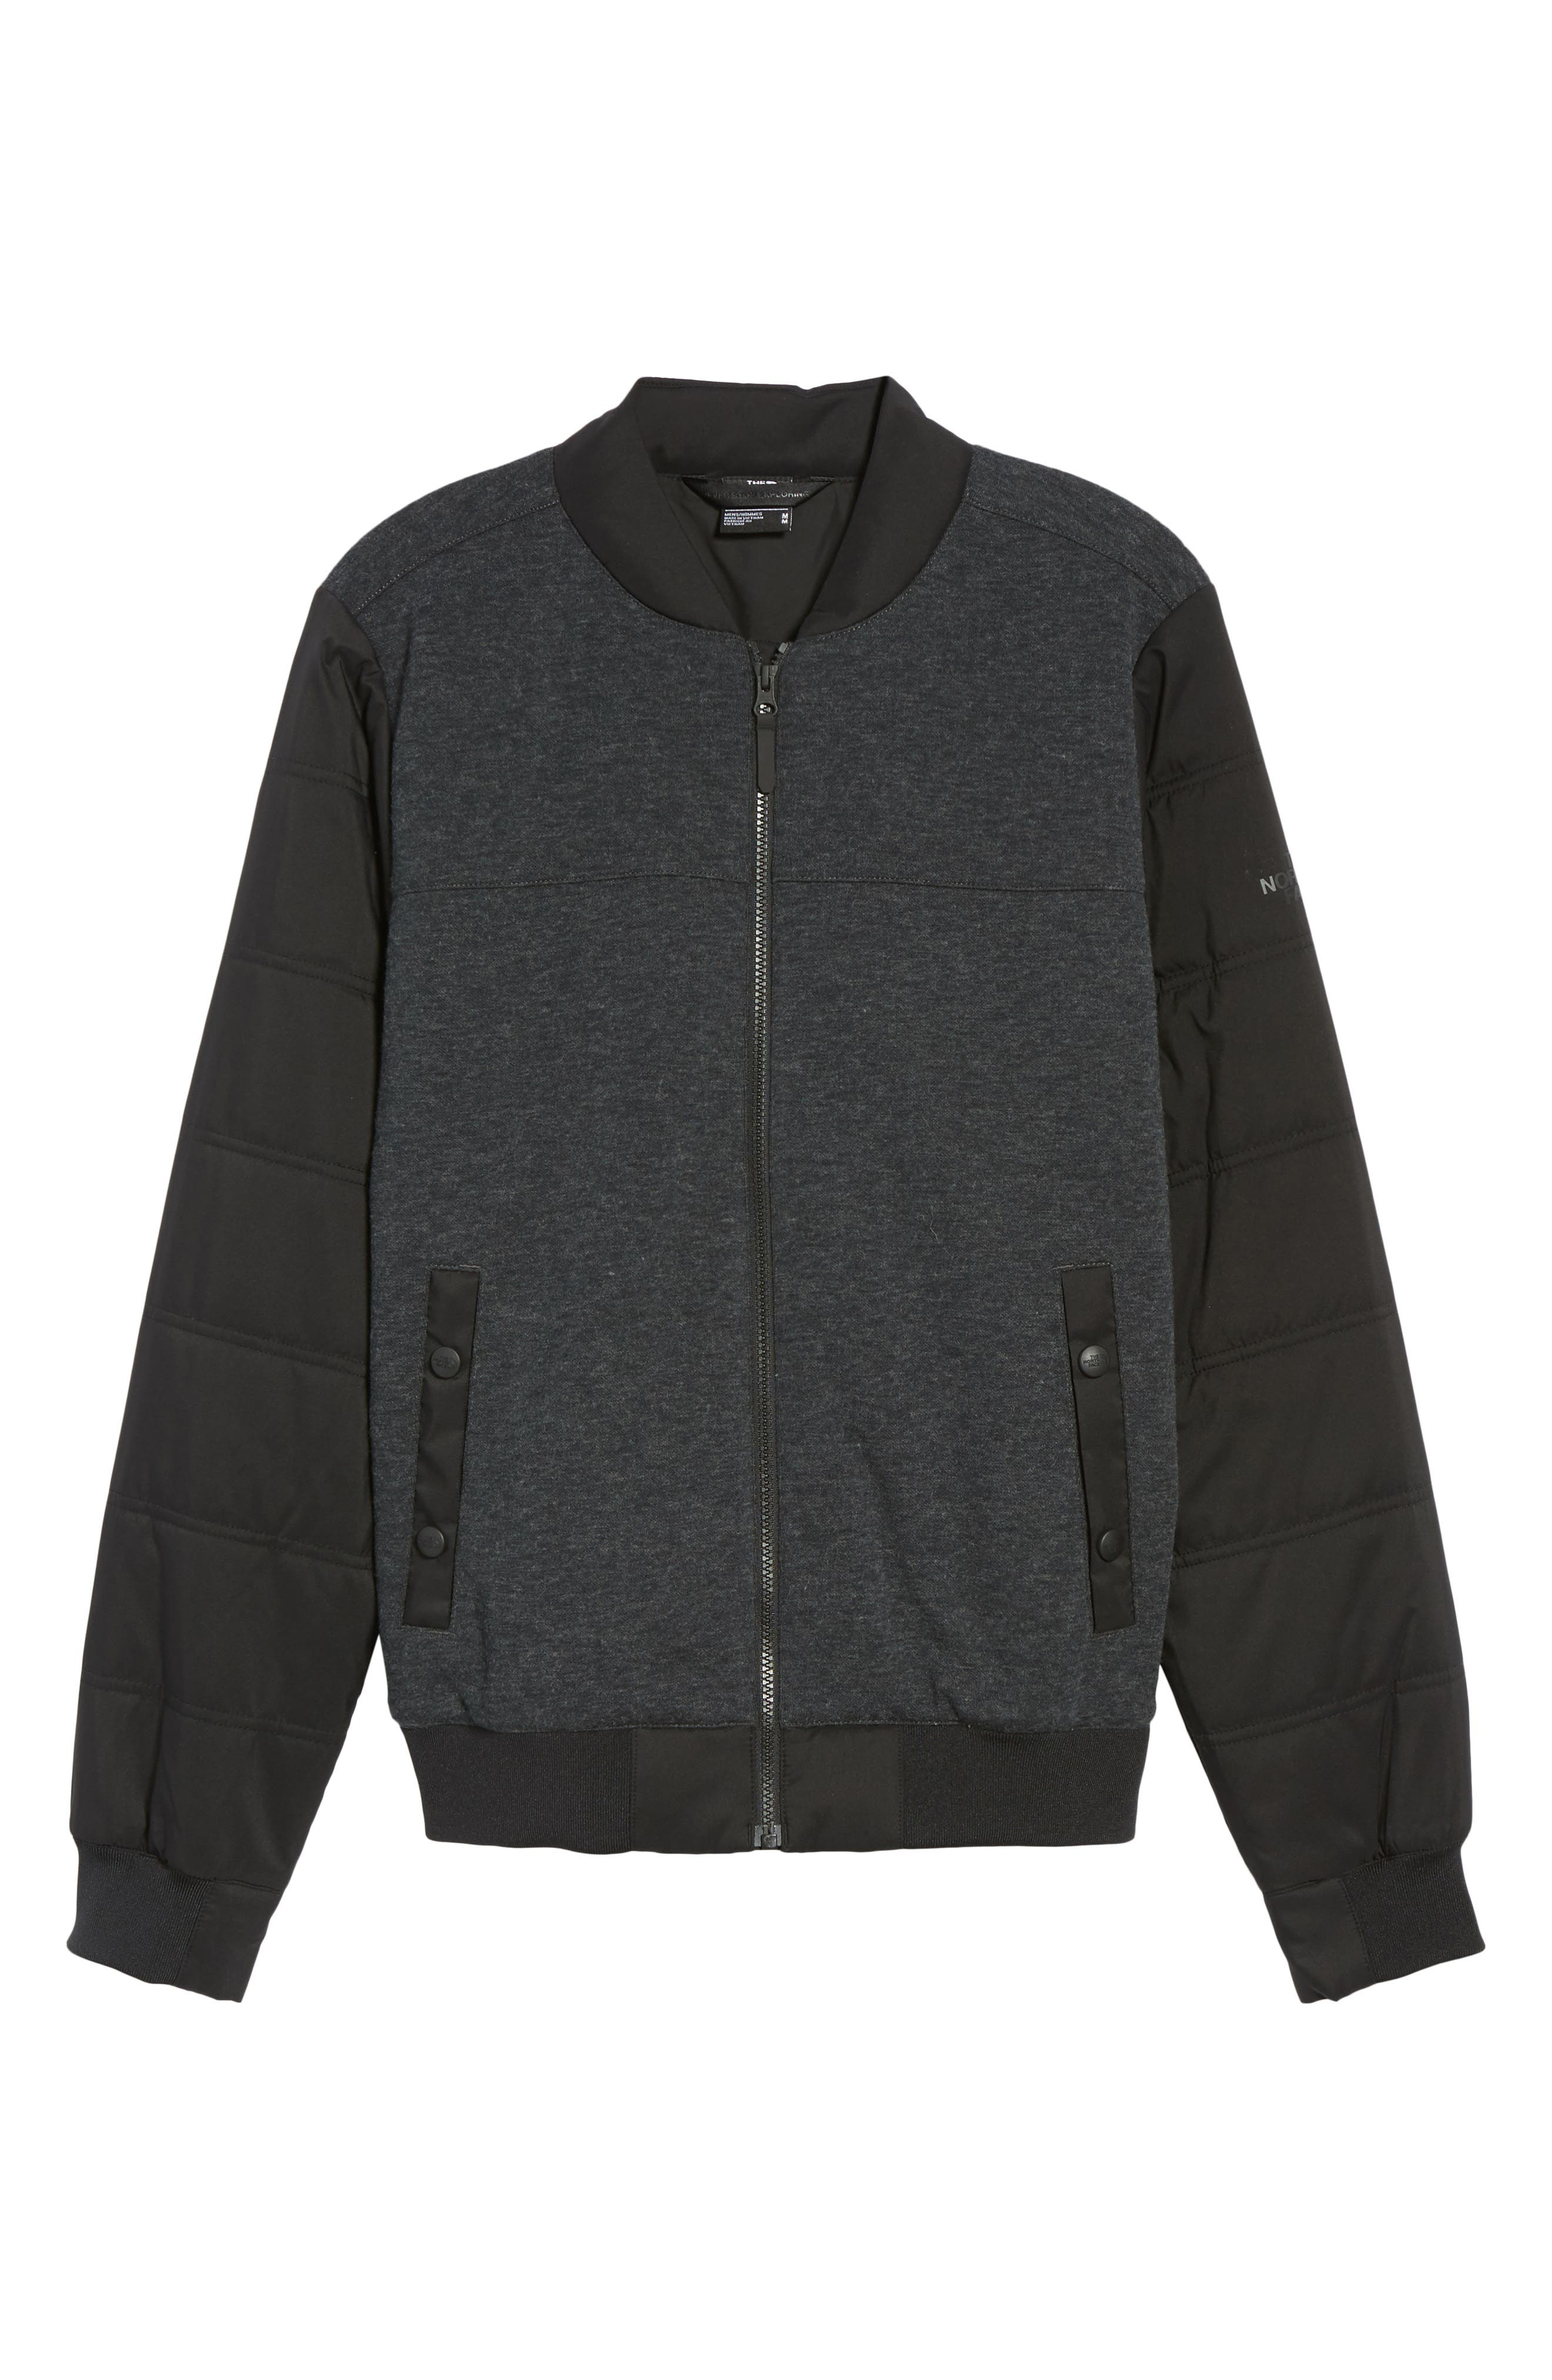 Far Northern Hybrid Bomber Jacket,                             Alternate thumbnail 5, color,                             DARK GREY HEATHER/ BLACK